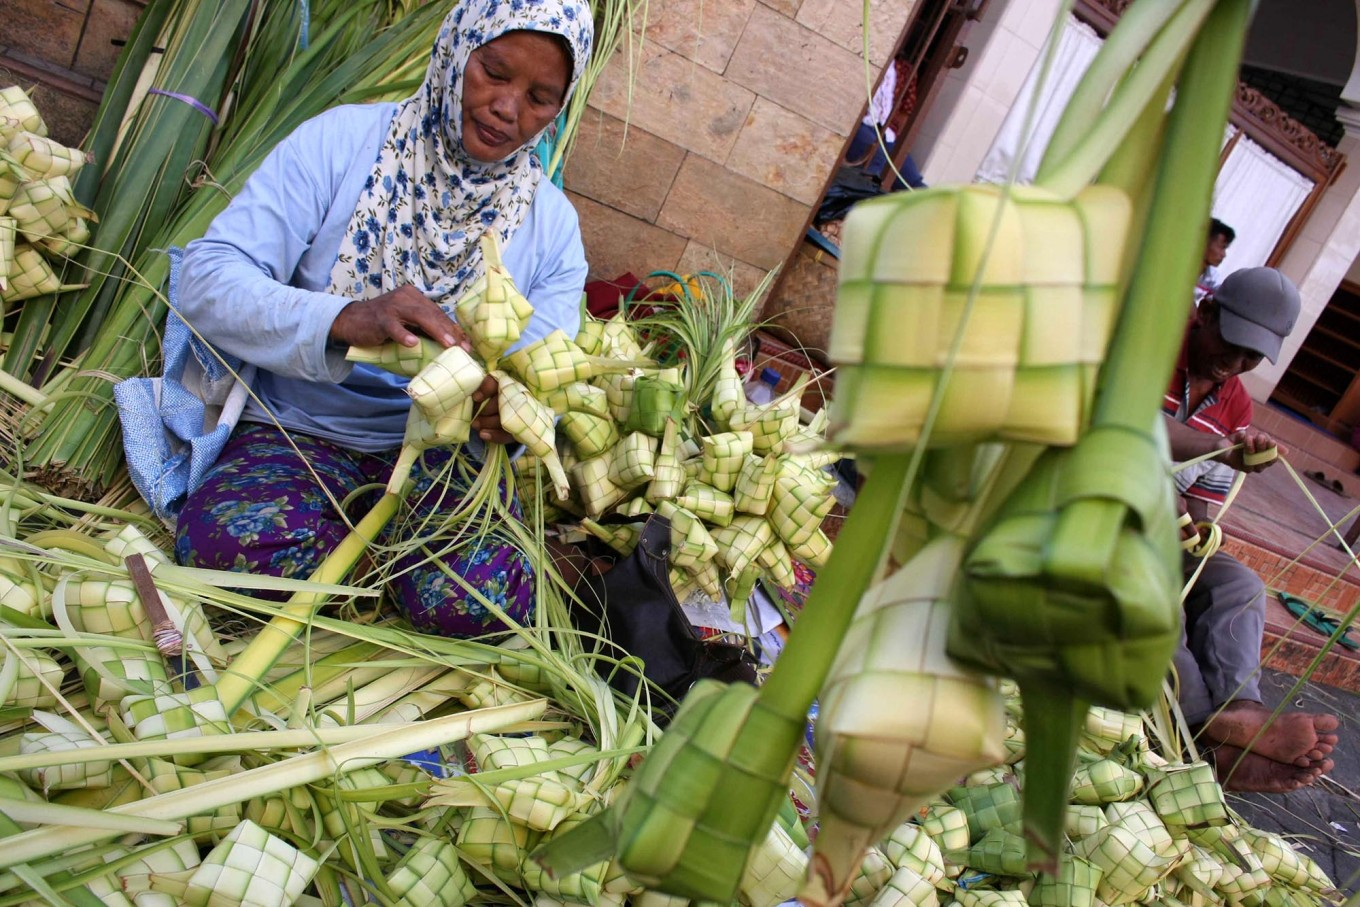 Piece of cake: Warsini, 61, skillfully plaits coconut leaves that will be used to cook ketupat rice cakes in the traditional Legi Market in Surakarta, Central Java. A package containing 10 ready-to-use plaited coconut leaves costs Rp10.000 to Rp15.000 (about US$1). JP/ Ganug Nugroho Adi